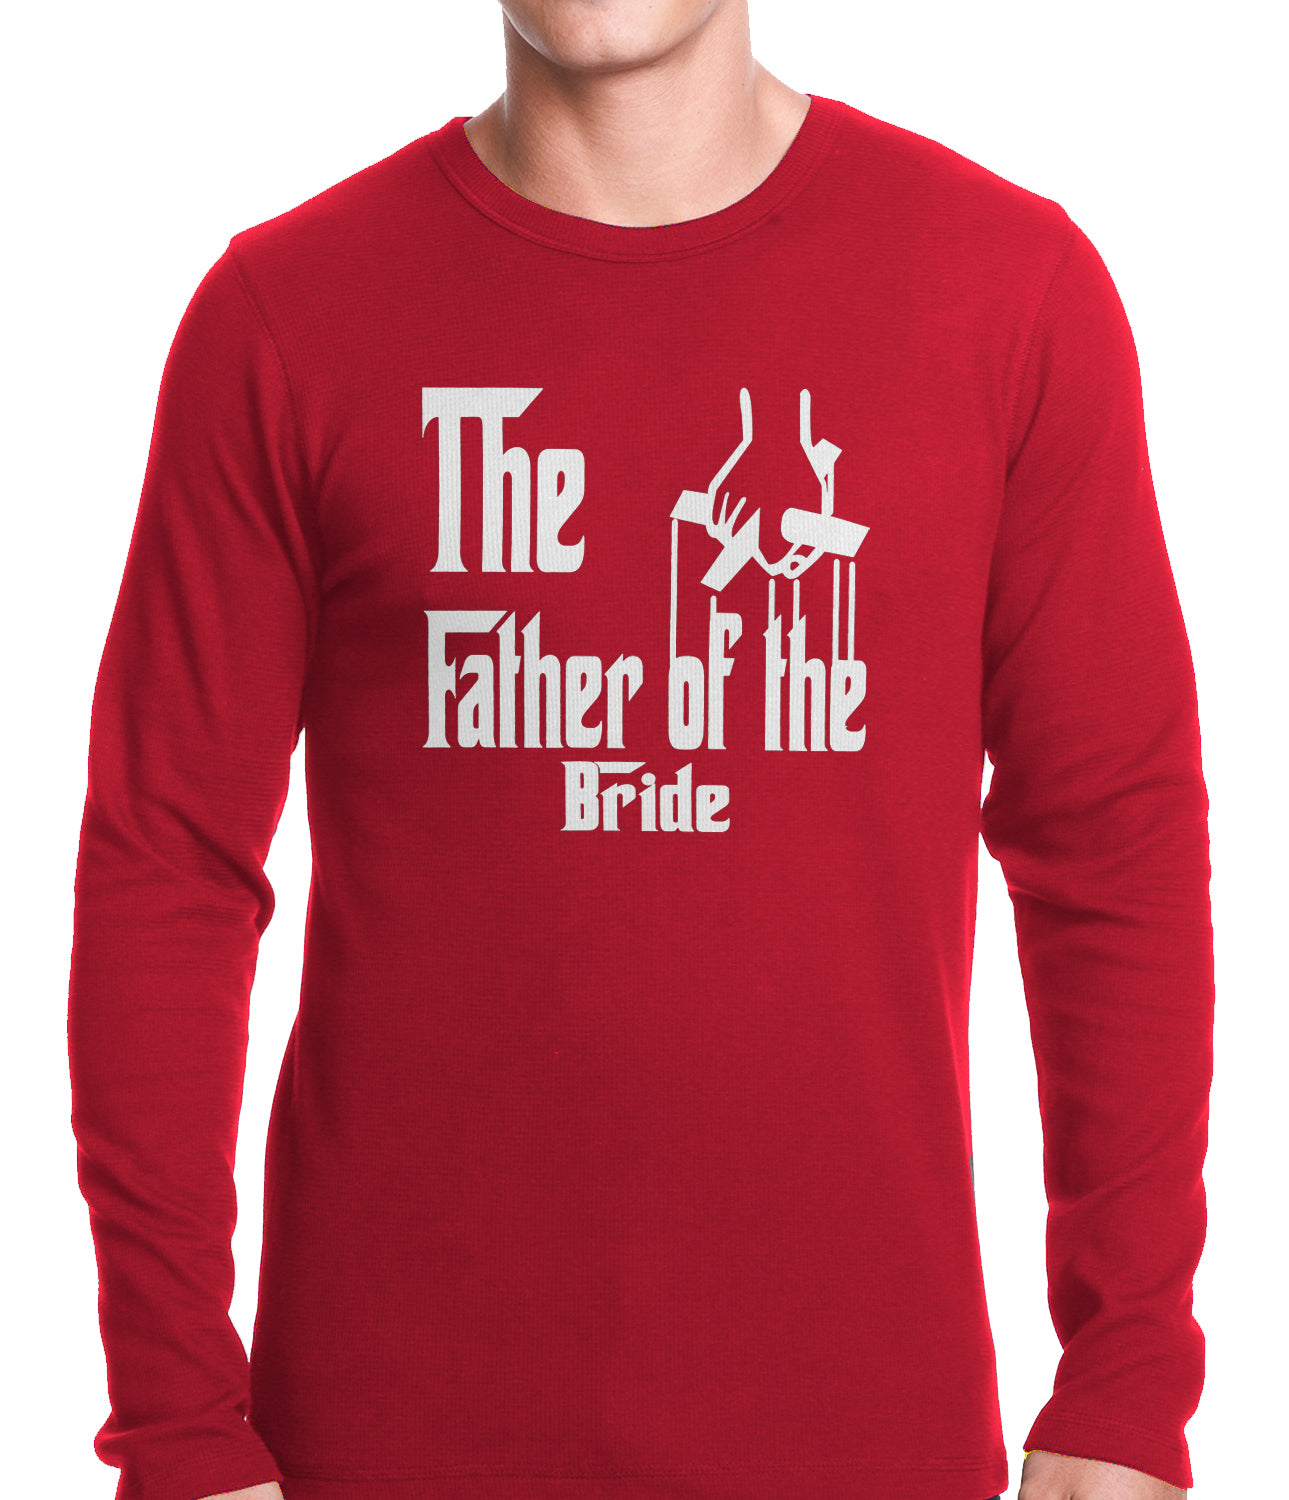 The Father of the Bride Funny Thermal Shirt